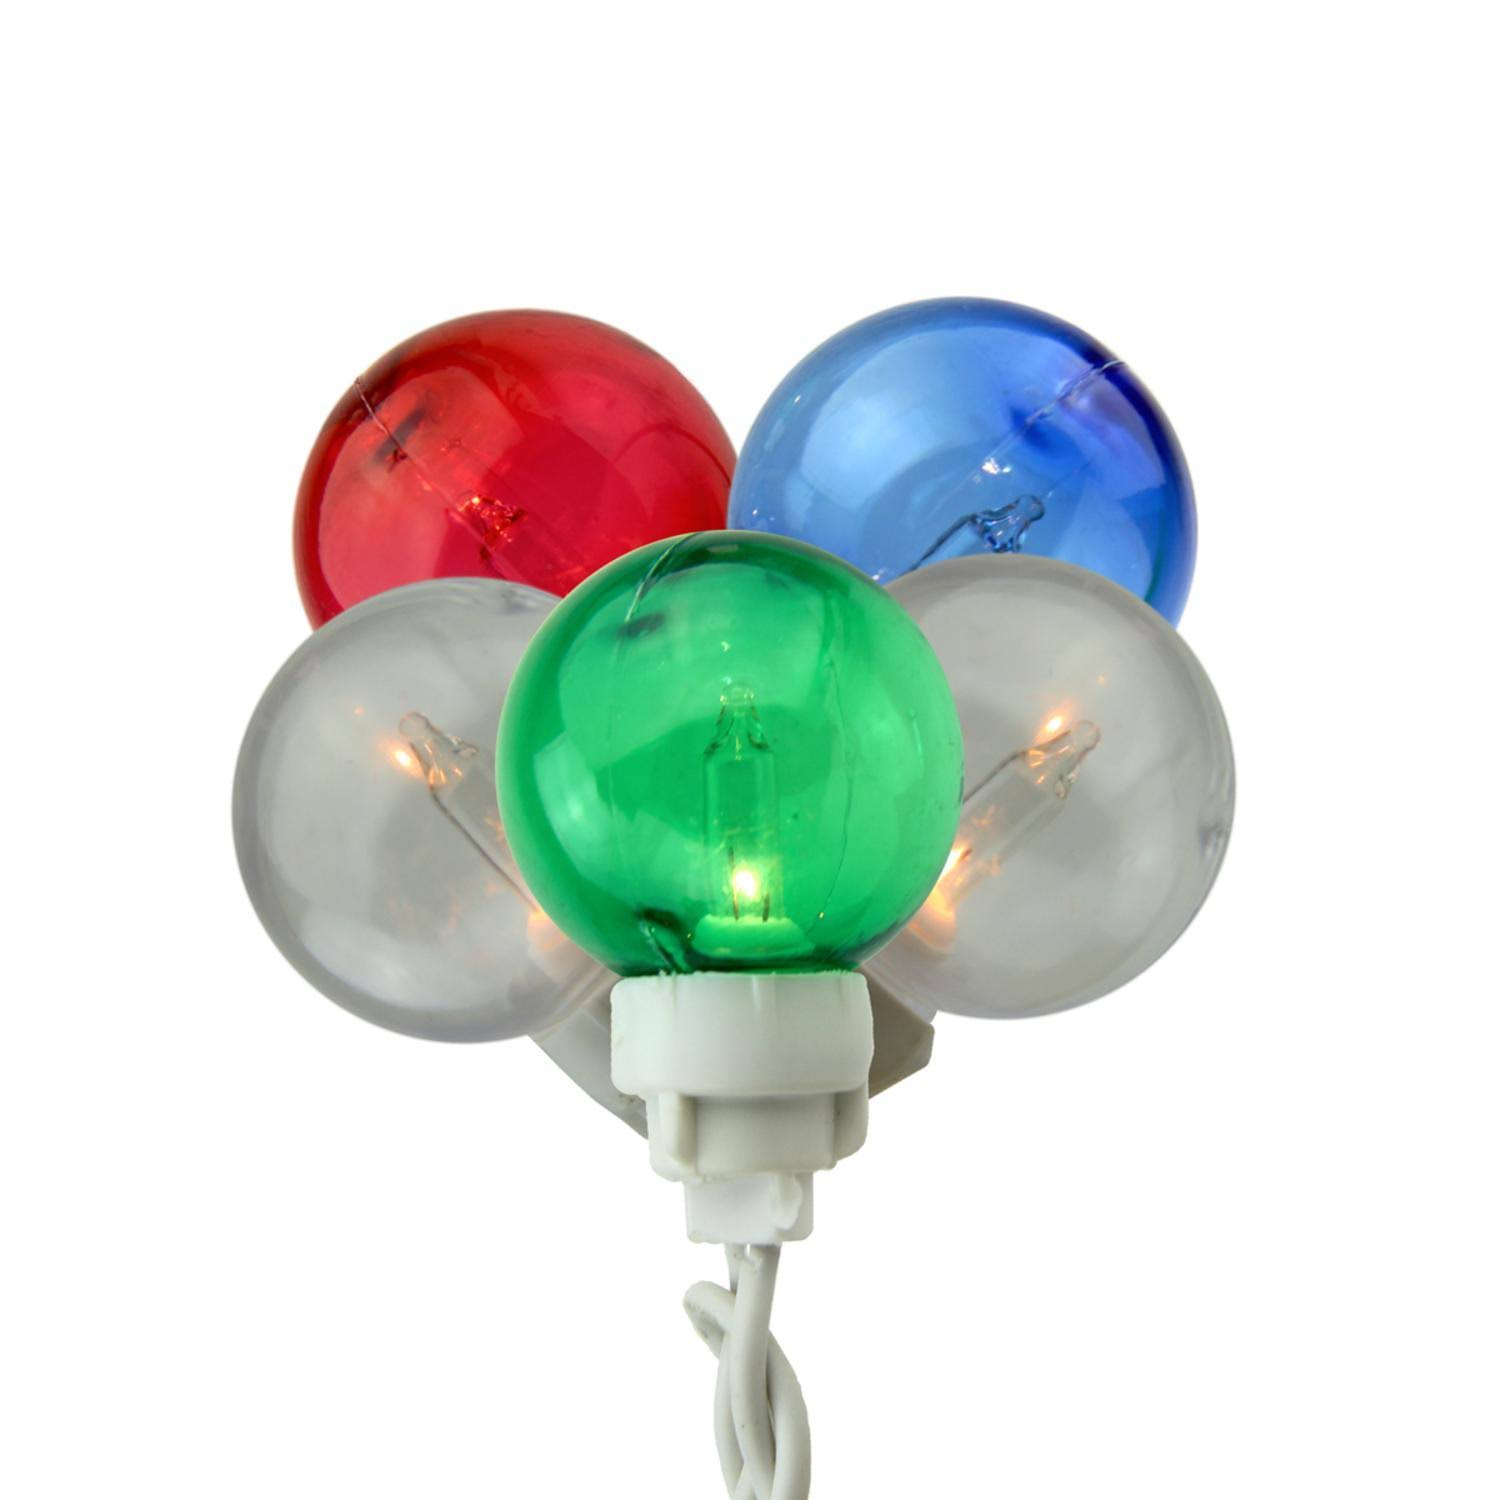 Set of 100 Multi-color G30 Globe Icicle Christmas Lights - White Wire